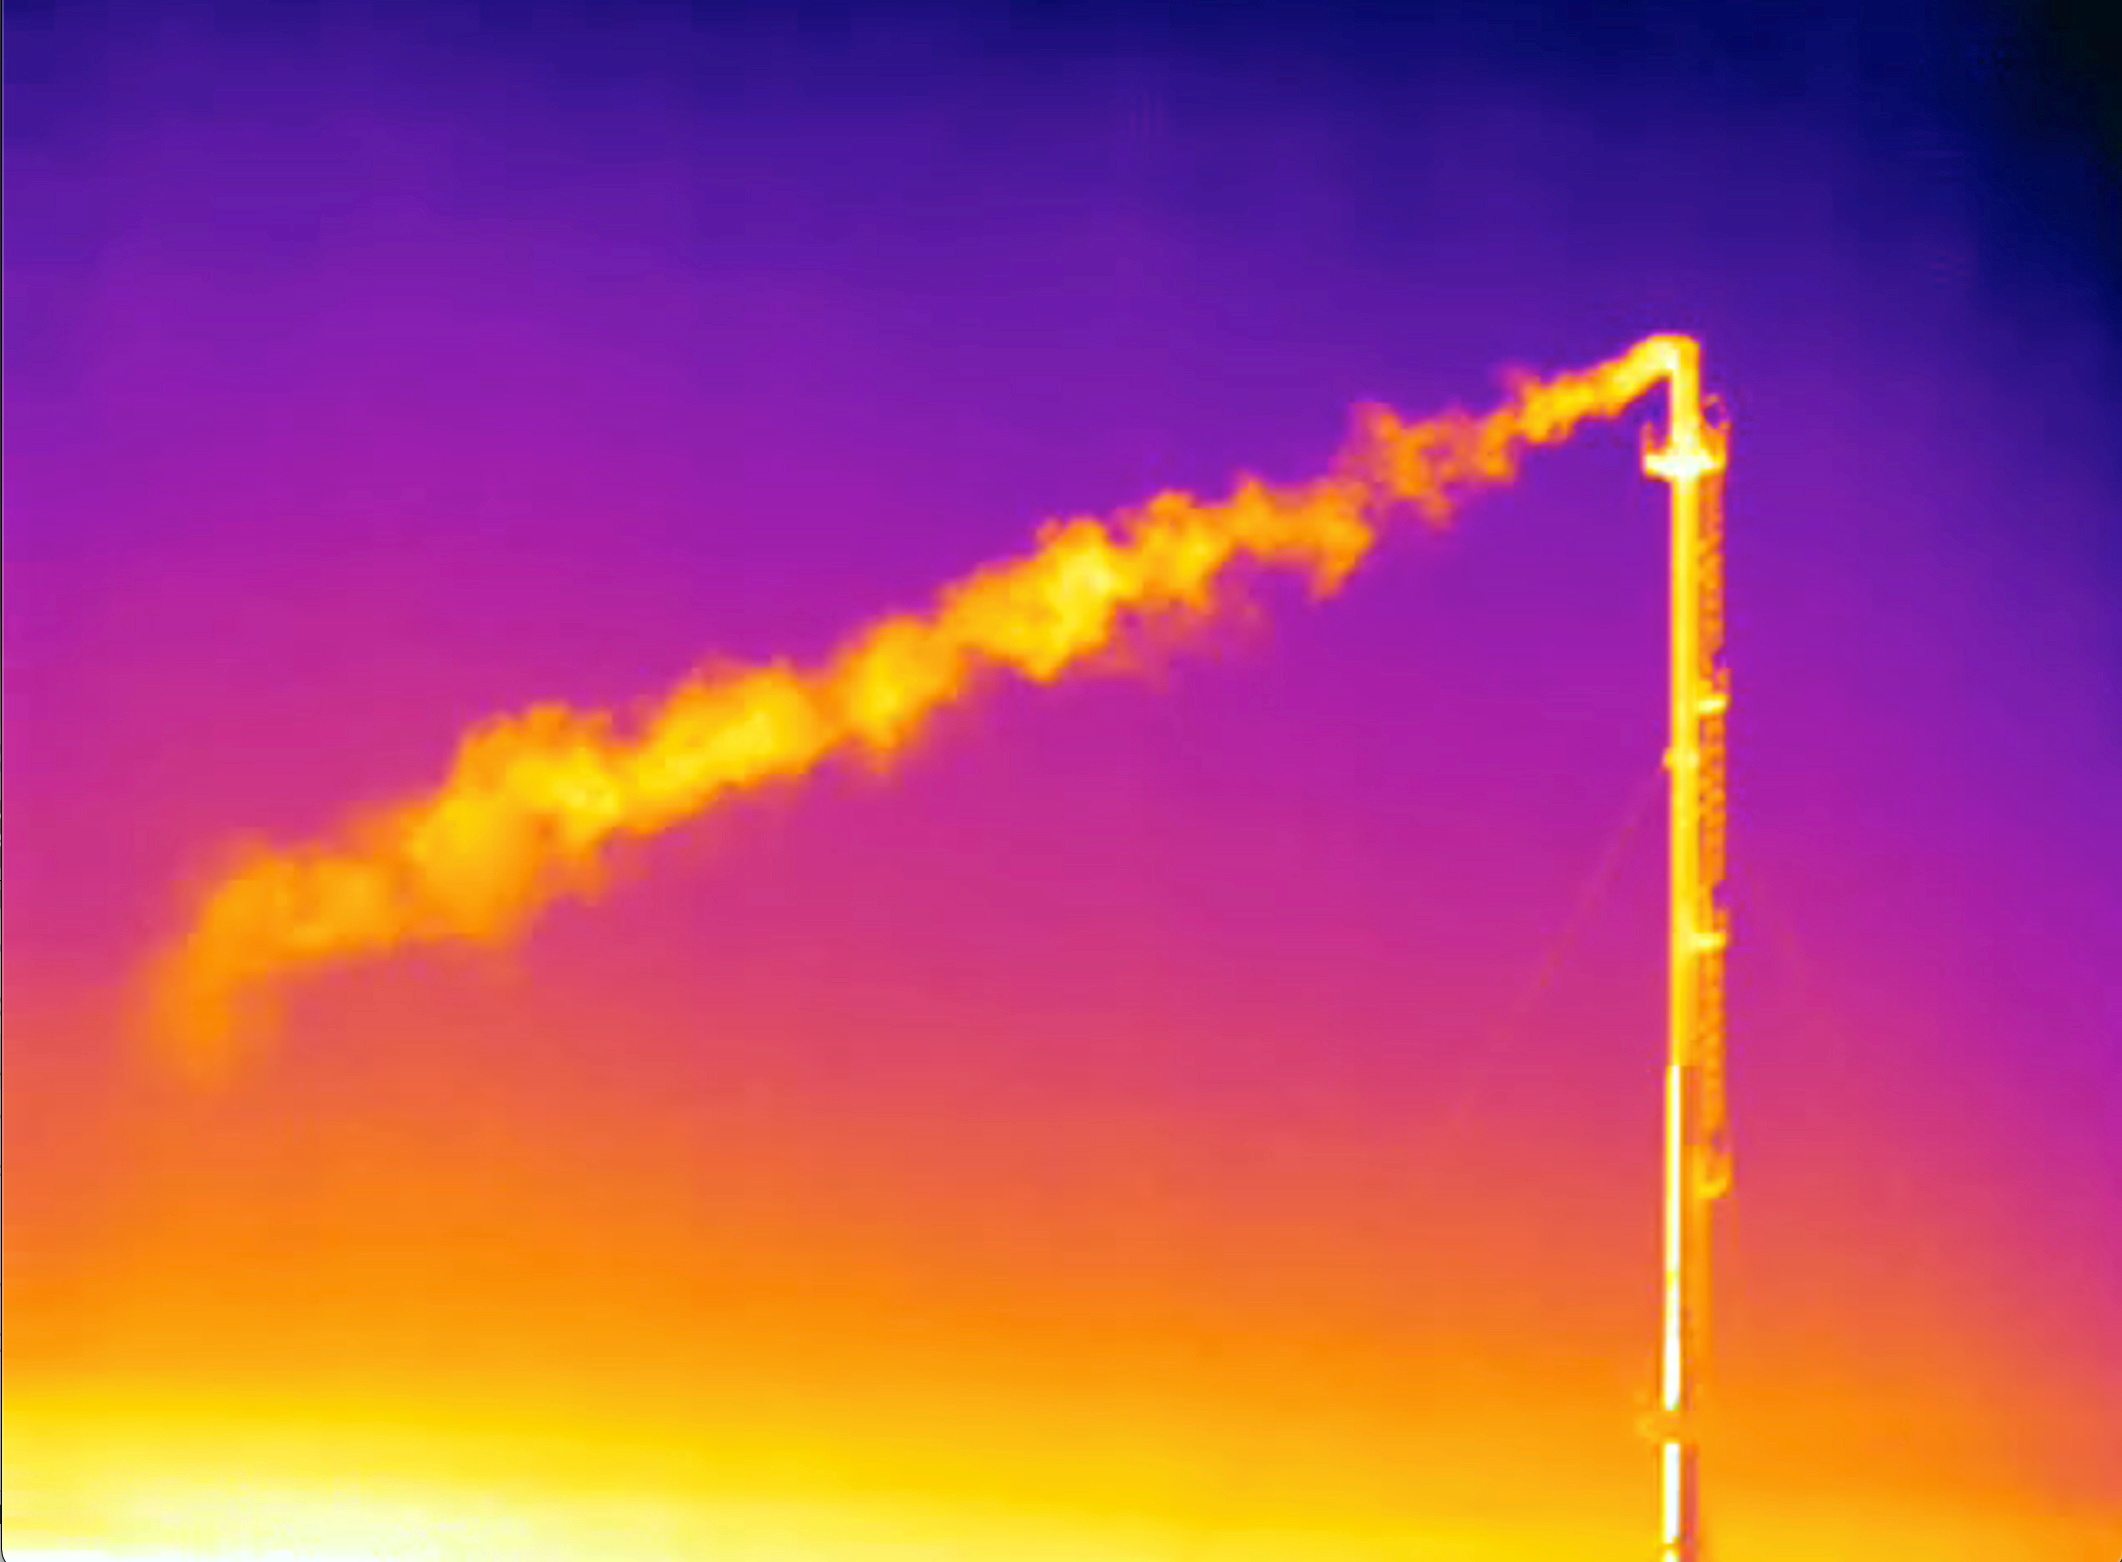 A handout screen grab from thermographic video footage shot with an infrared camera and made available to Reuters June 10, 2021 by Clean Air Task Force (CATF), shows what appears to be a plume of methane gas flowing from a vent stack at the SNAM underground storage facility in Minerbio, Italy. CATF/James Turitto/Handout via Reuters